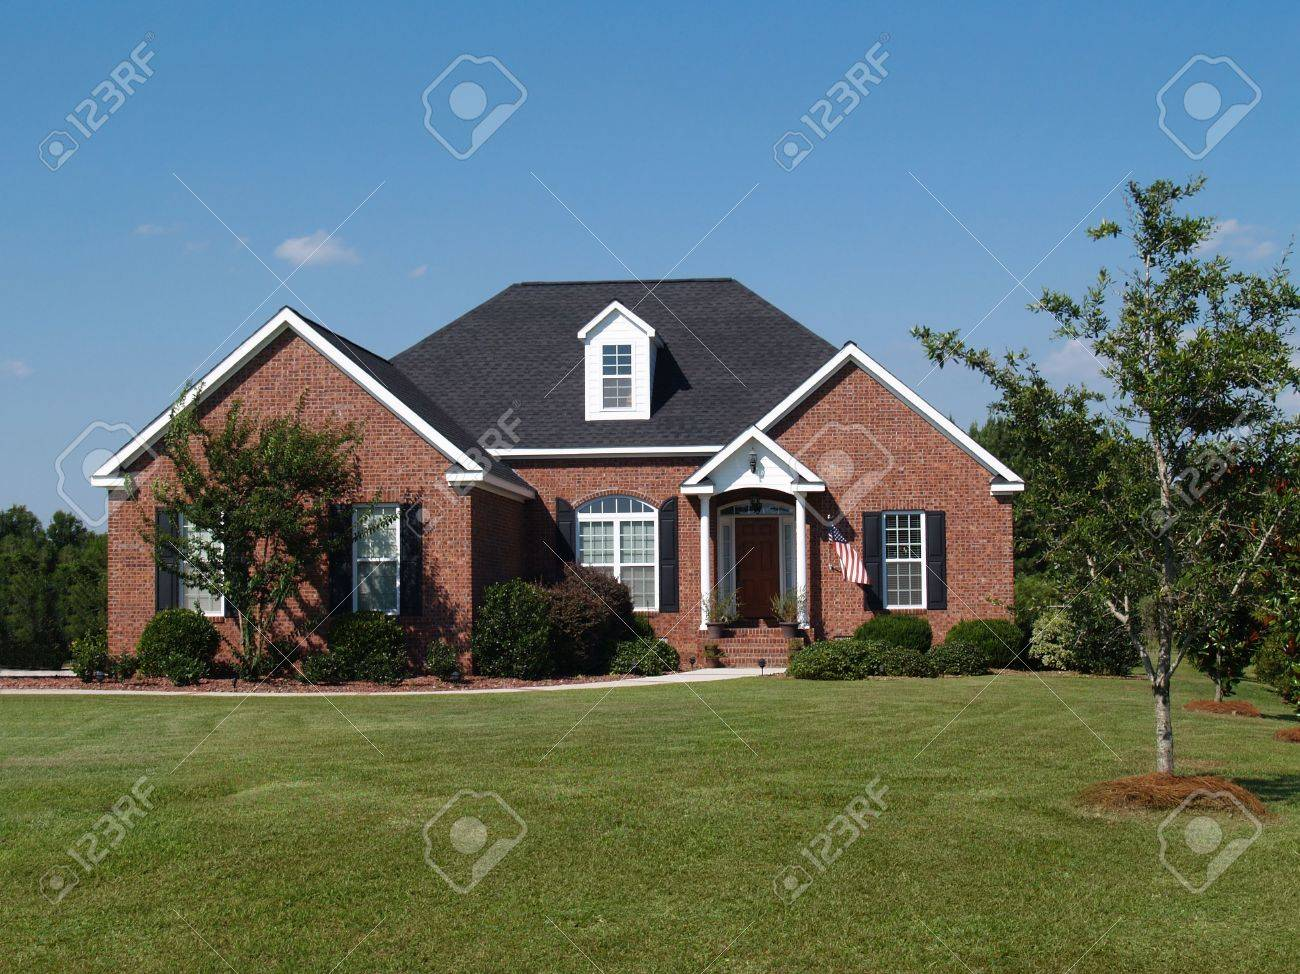 One story new red brick residential home. - 5580910